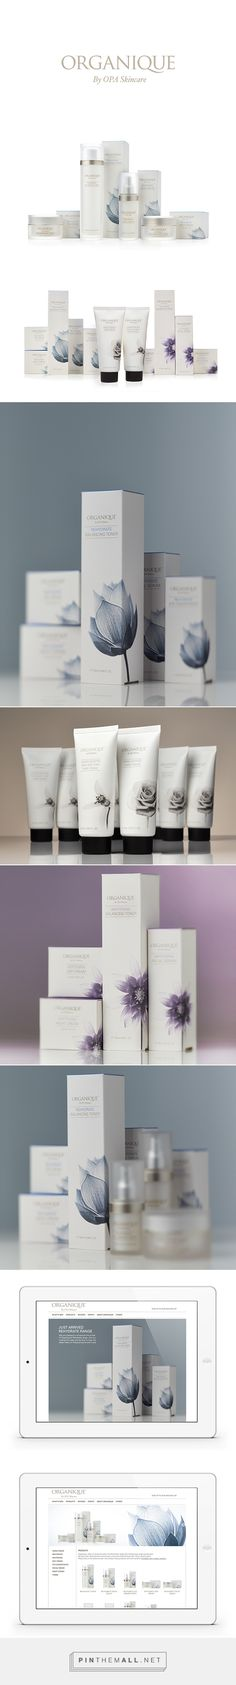 Organique Skincare Packaging by Stephanie Currie | Fivestar Branding – Design and Branding Agency & Inspiration Gallery